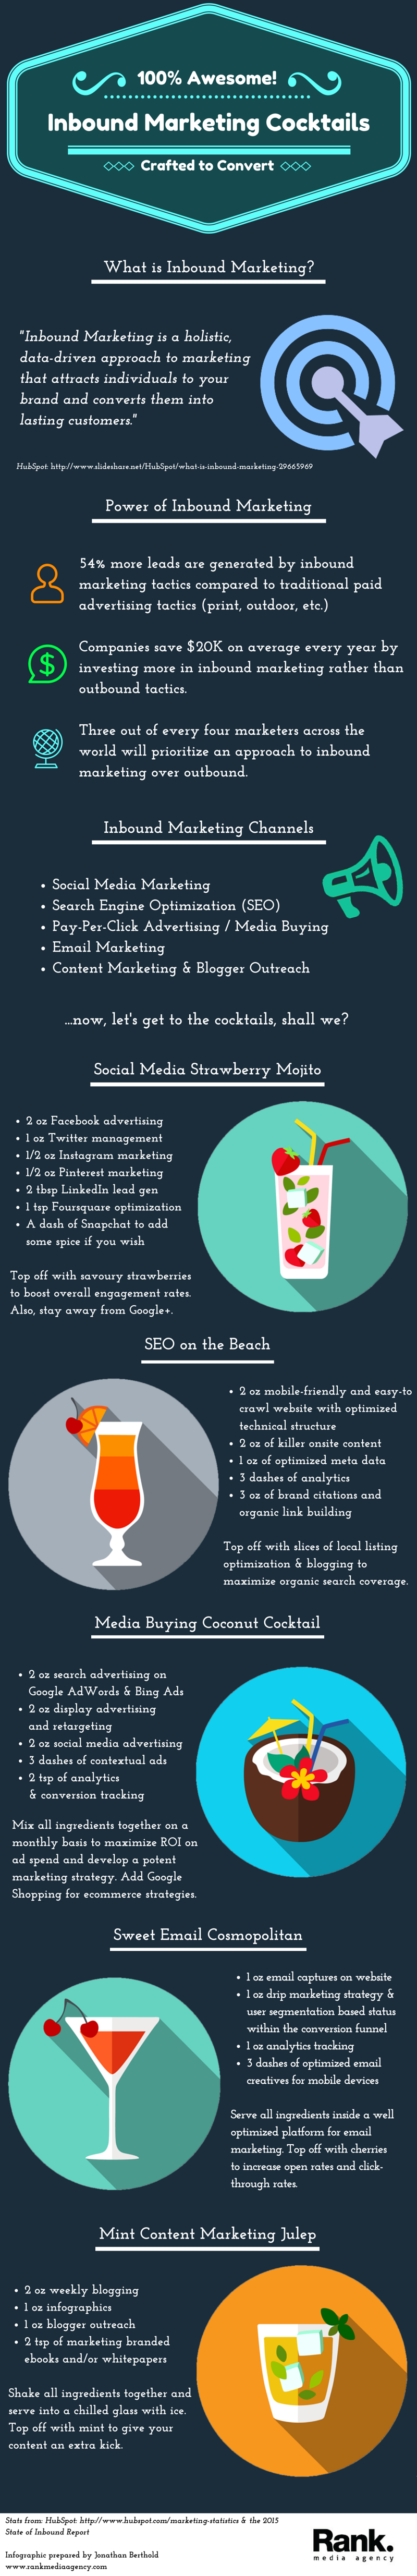 100% Awesome Inbound Marketing Cocktails Infographic